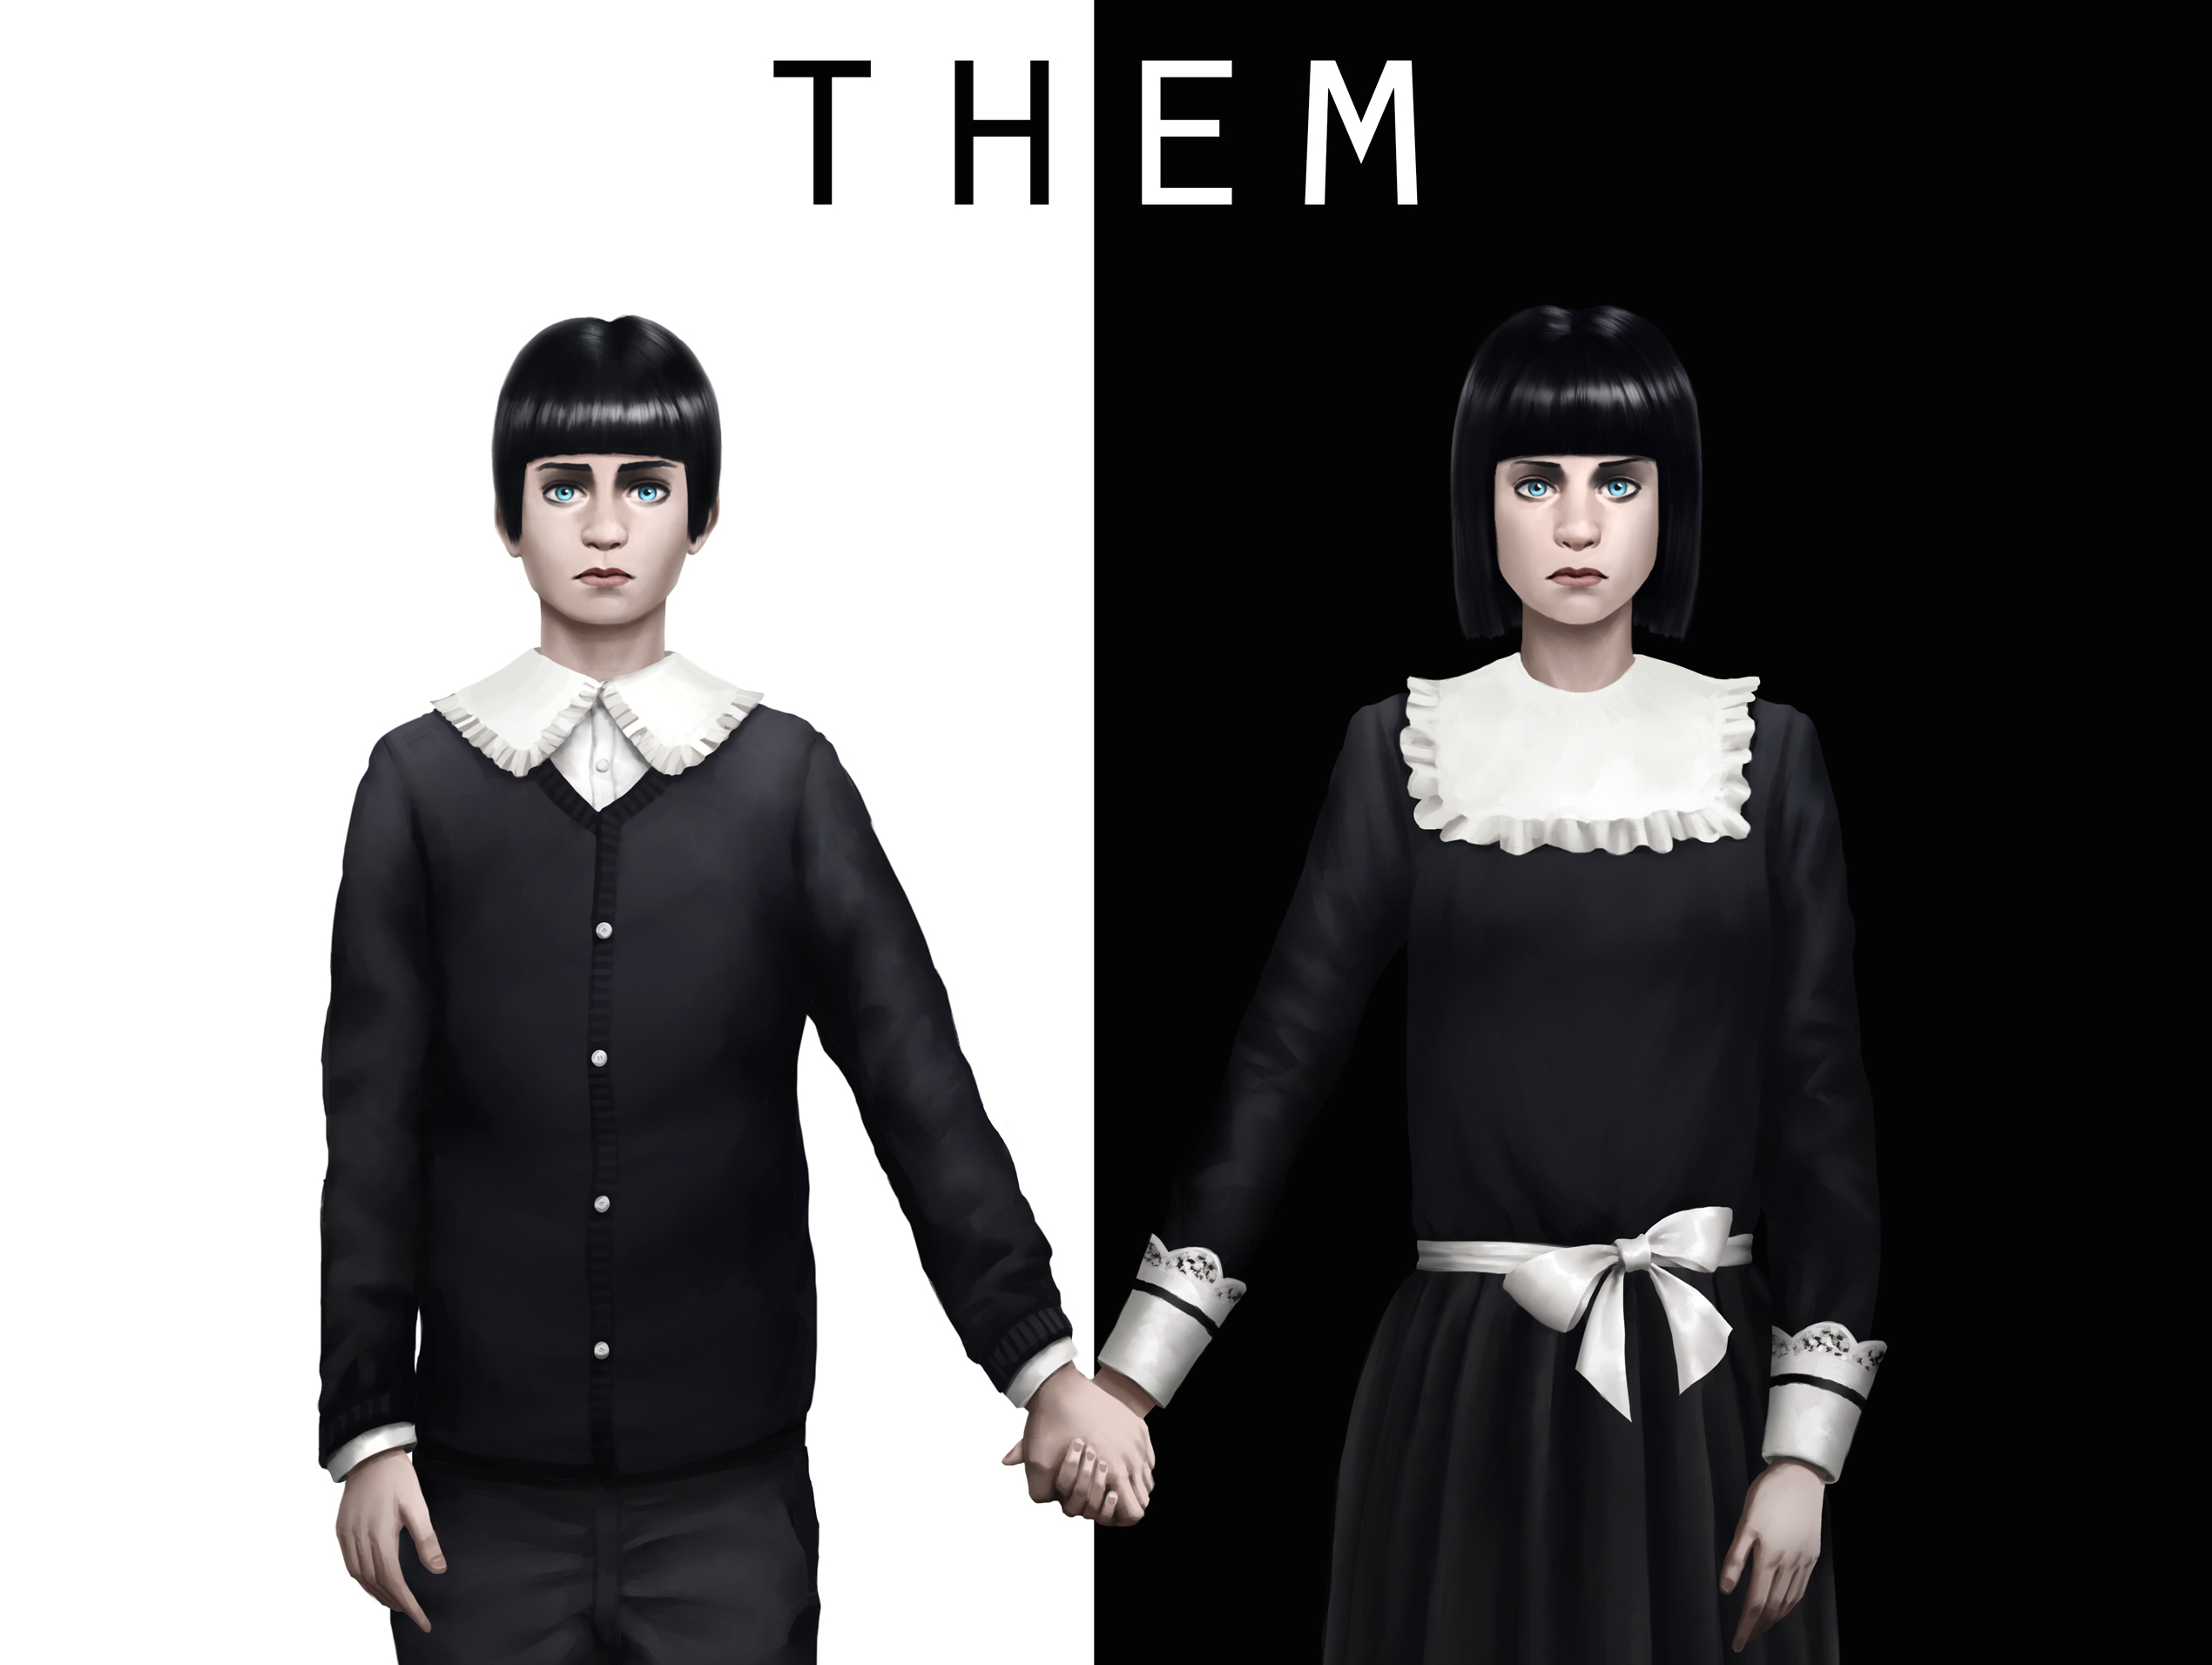 Them (Short Film)